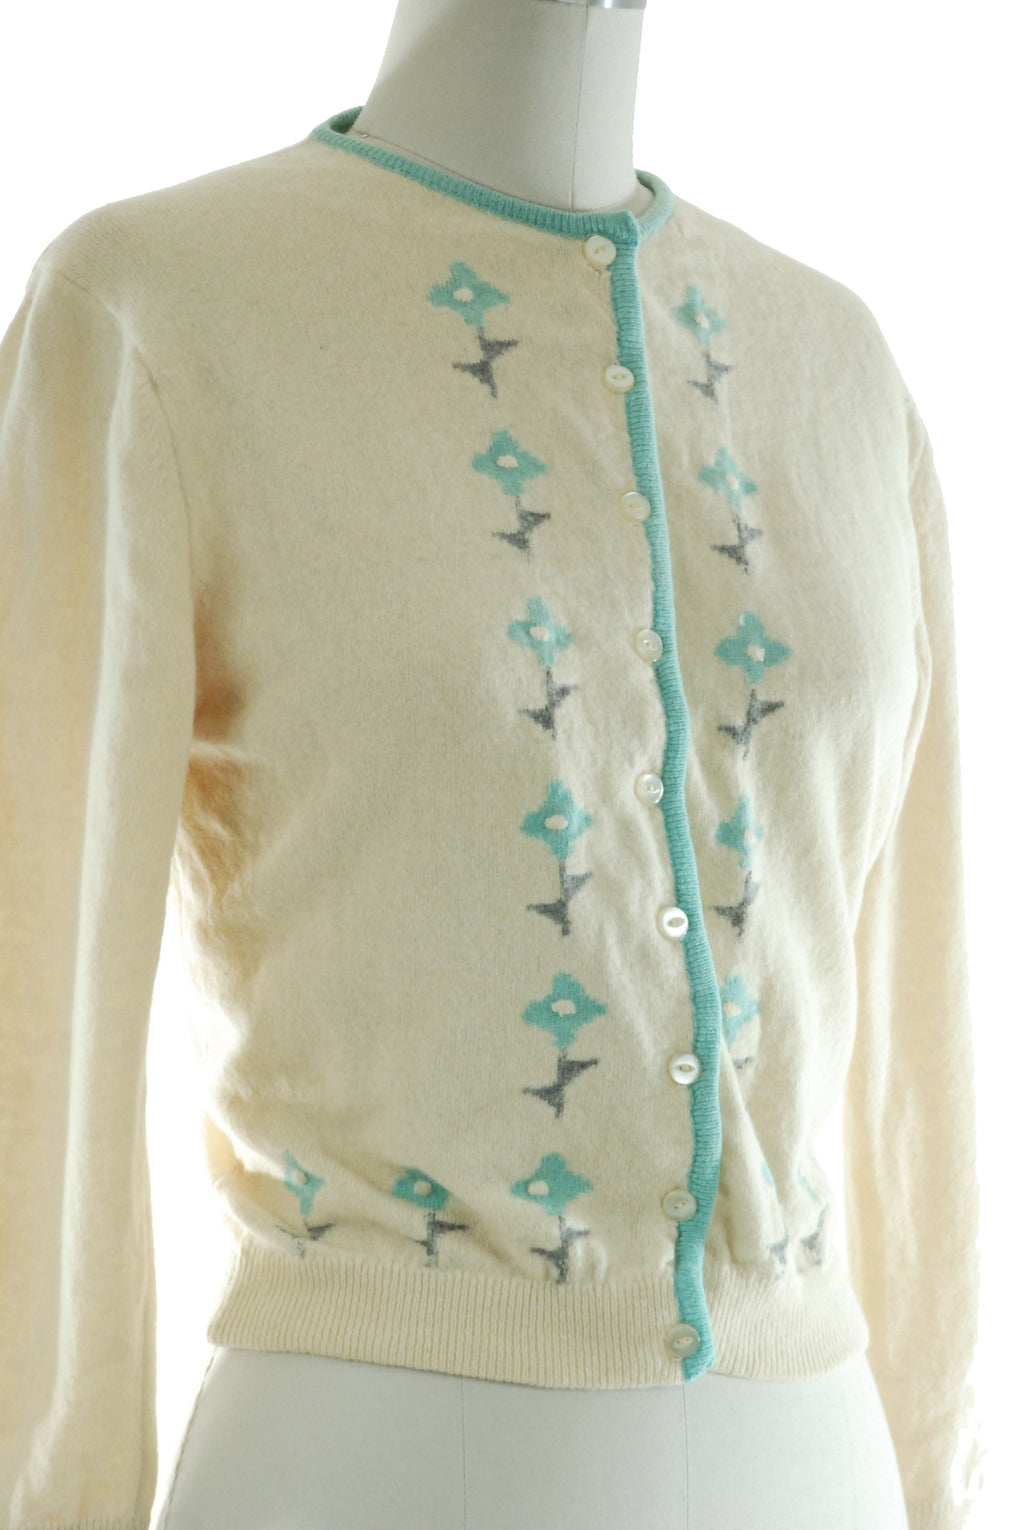 1950s Bobbie Brooks Intarsia Knit Cardigan Sweater in Ivory with Charming Aqua Flower Motif